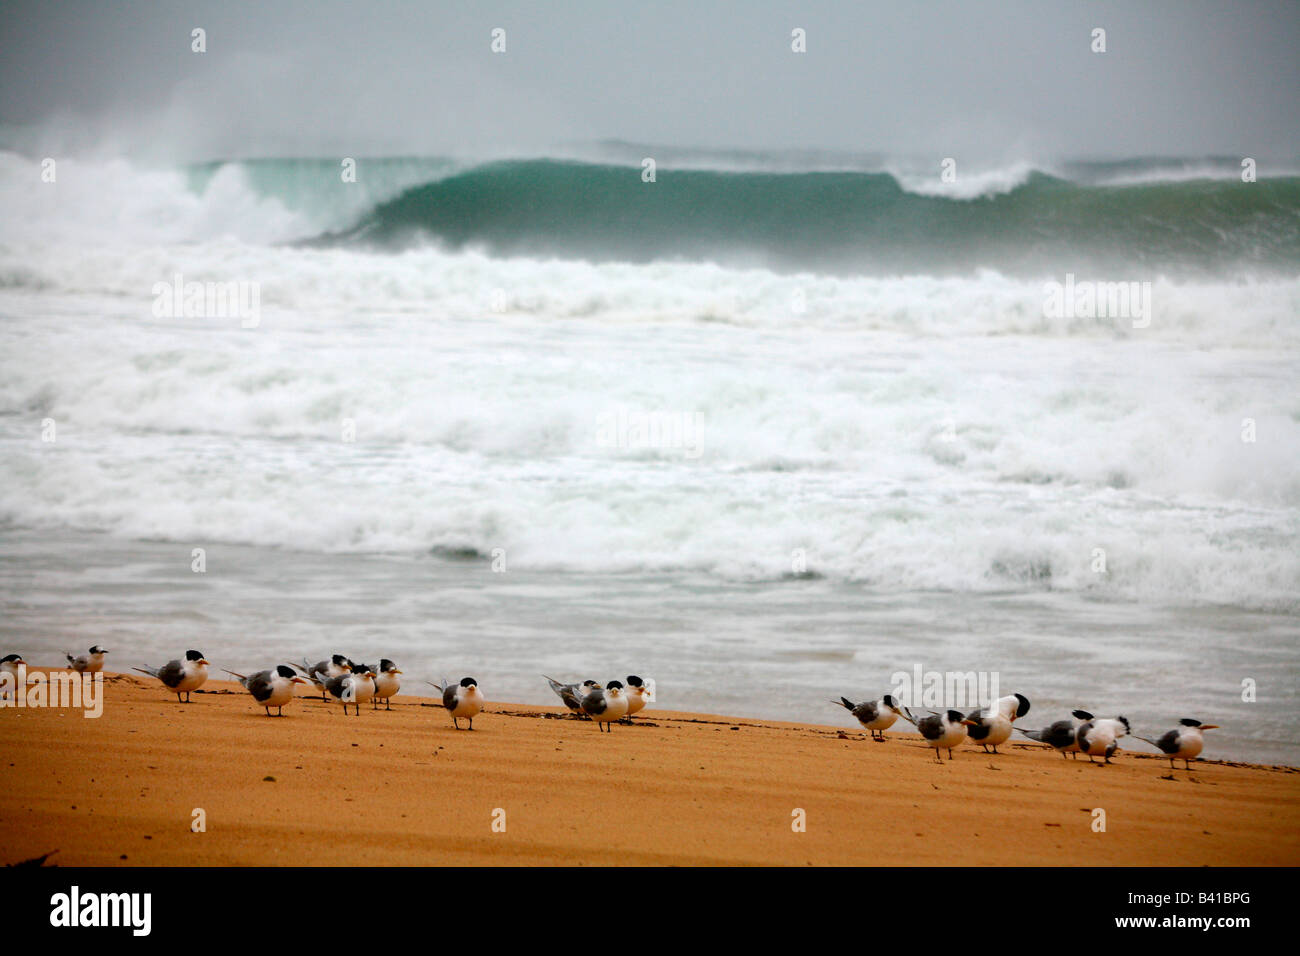 Terns on a deserted beach at Manly Australia - Stock Image